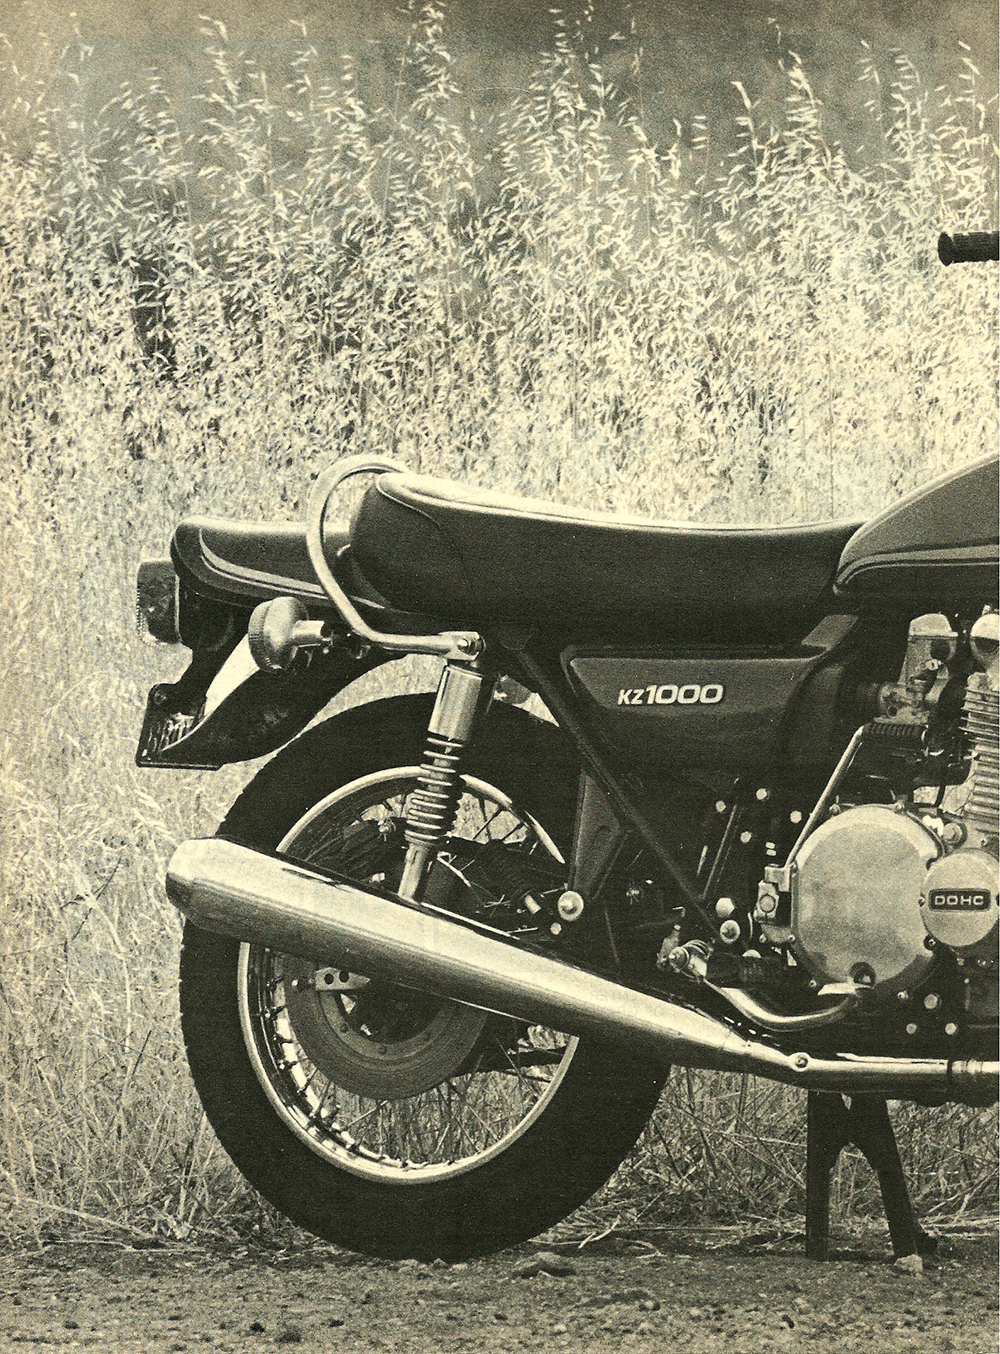 1978 Kawasaki KZ1000 road test 01.jpg